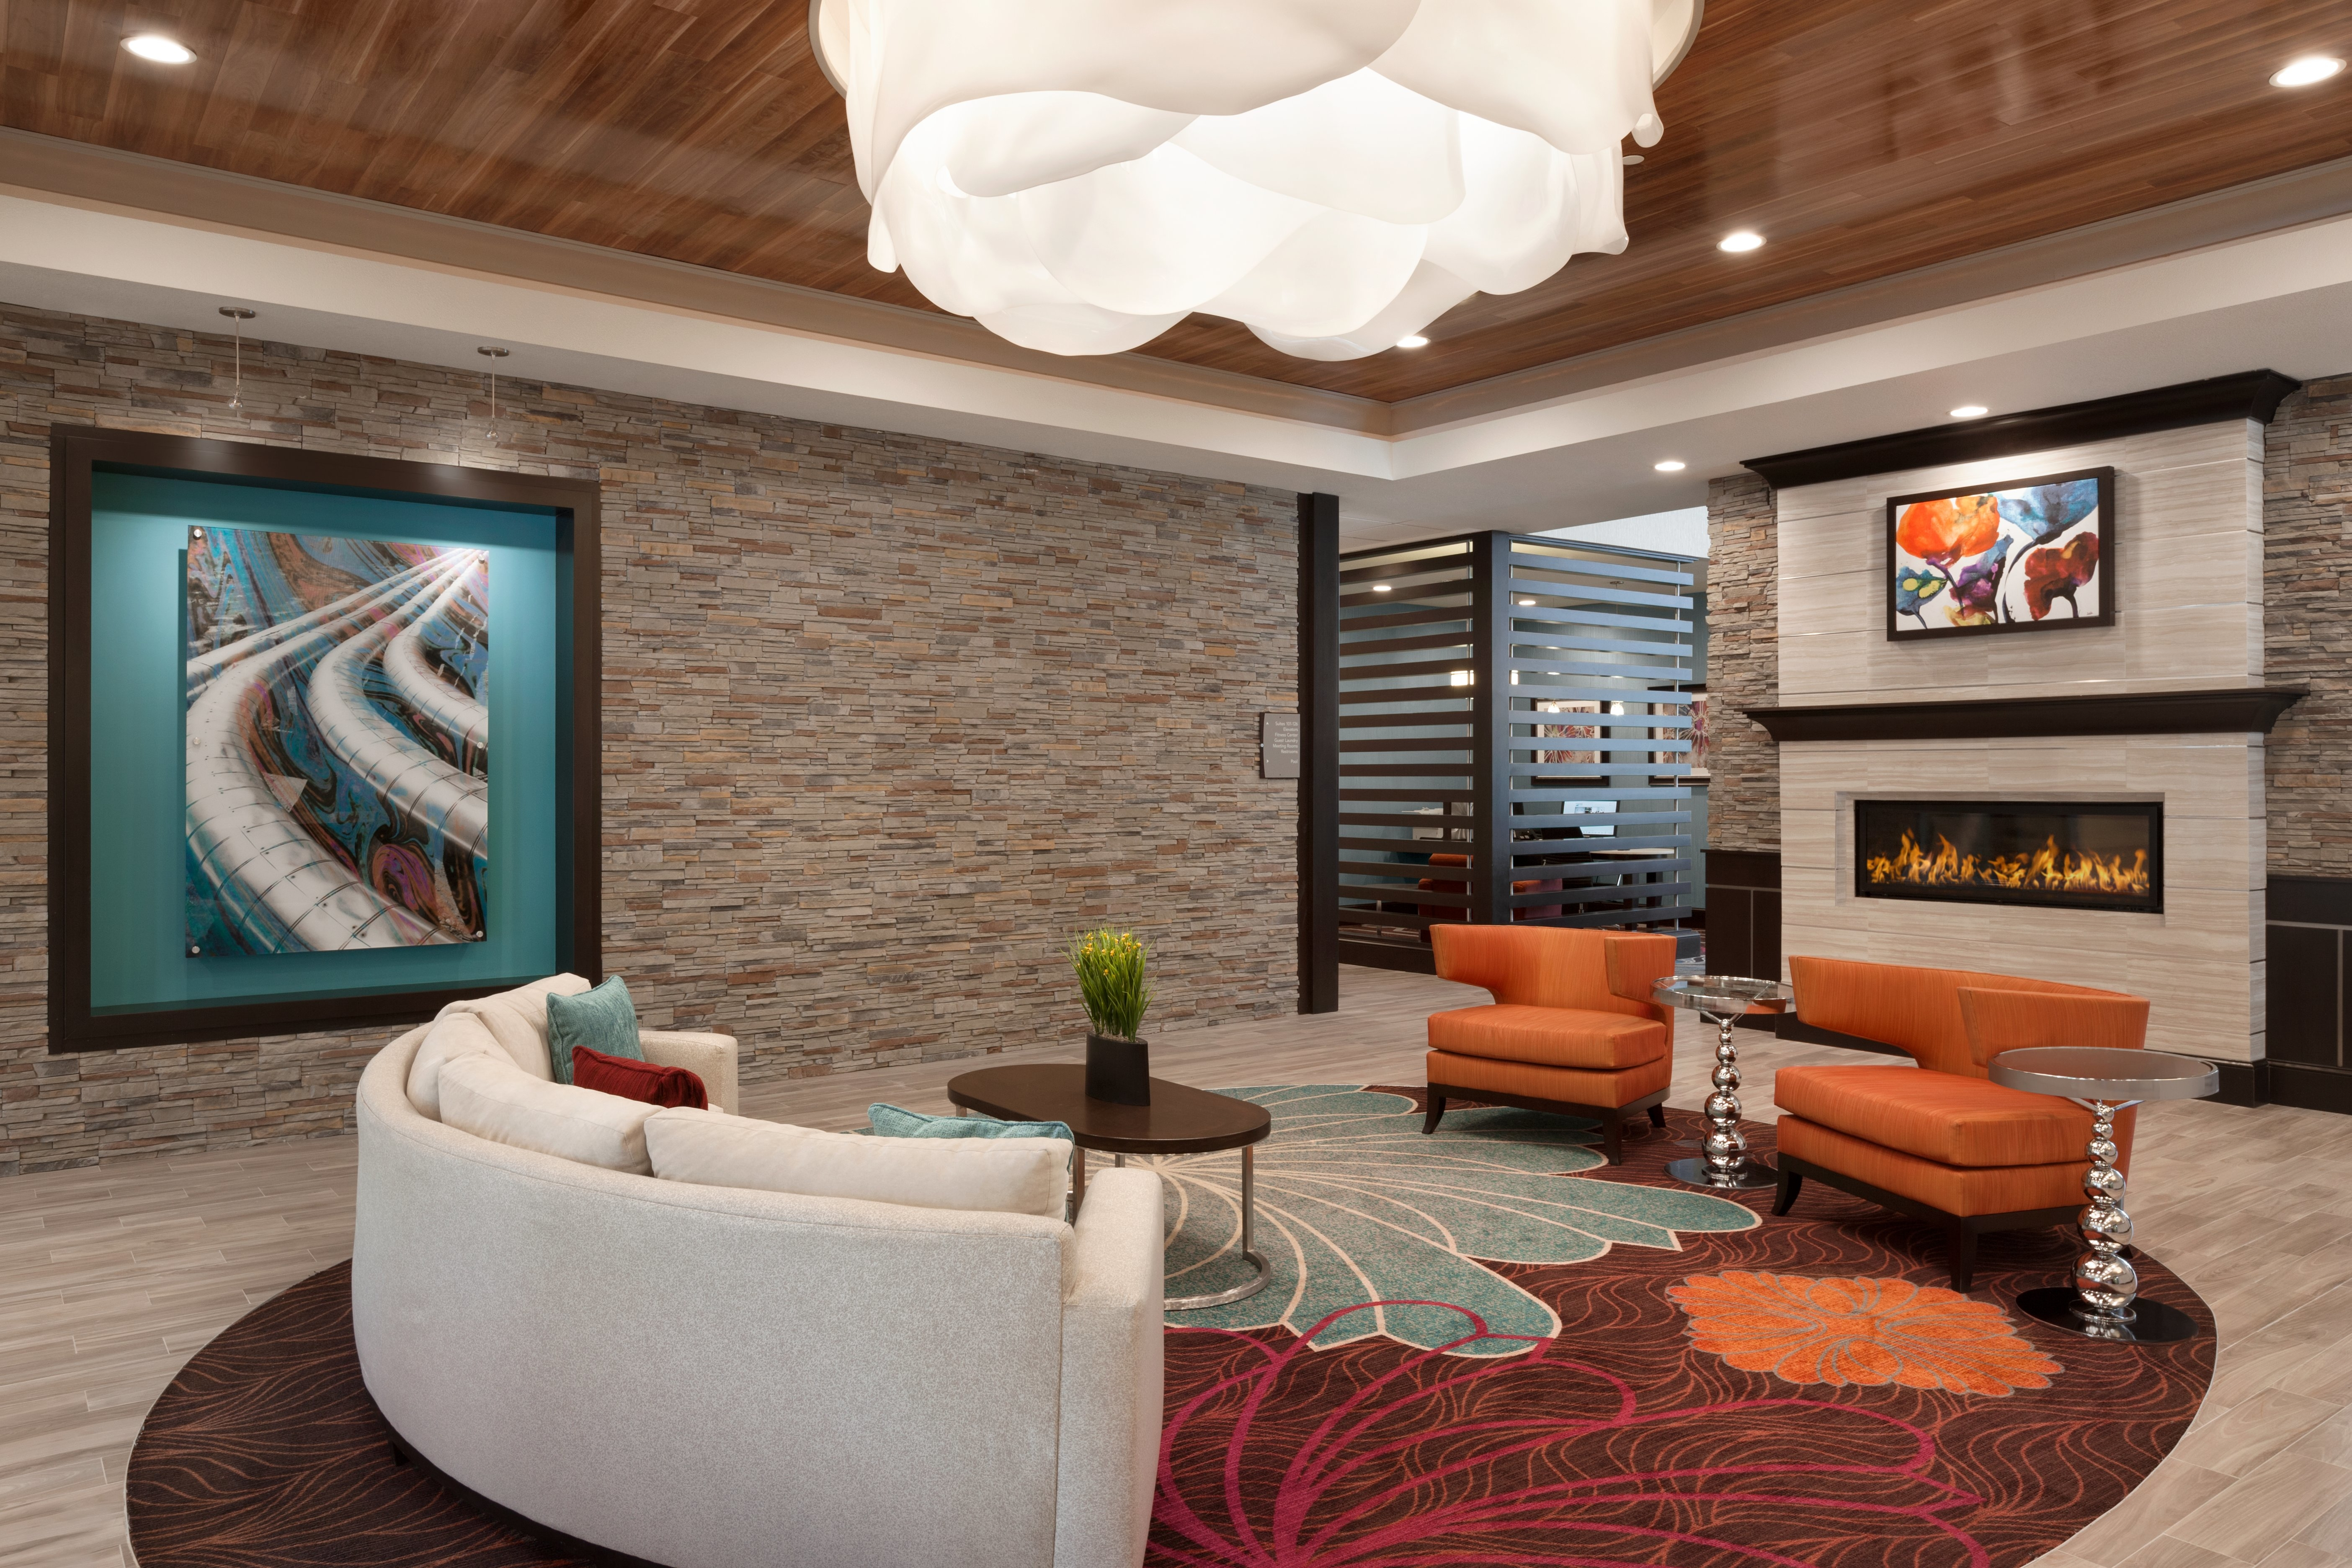 Homewood Suites by Hilton North Houston/Spring image 8